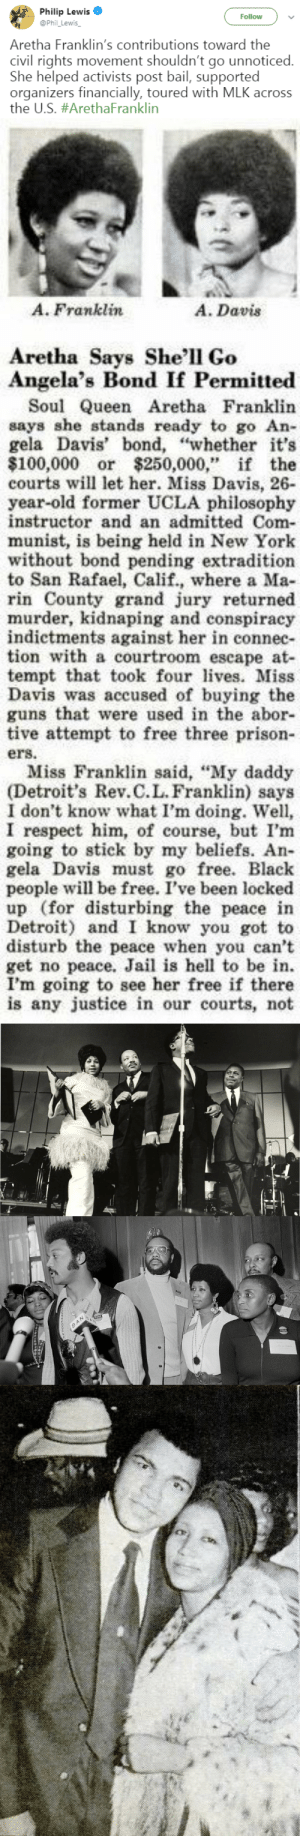 "Anaconda, Detroit, and Guns: Philip Lewis  @Phil_Lewis  Follow  Aretha Franklin's contributions toward the  civil rights movement shouldn't go unnoticed.  She helped activists post bail, supported  organizers financially, toured with MLK across  the US. #ArethaFranklin   A. Franklin  A. Davis  Aretha Says She'll Go  Angela's Bond If Permitted  Soul Queen Aretha Franklin  says she stands ready to go An-  gela Davis' bond, ""whether it's  $100,000 or $250,000,"" if the  courts will let her. Miss Davis, 26-  year-old former UCLA philosophy  instructor and an admitted Com-  munist, is being held in New York  without bond pending extradition  to San Rafael, Calif., where a Ma  rin County grand jury returned  murder, kidnaping and conspiracy  indictments against her in connec-  tion with a courtroom escape at-  tempt that took fourvs. Miss  Davis was accused of buying the  guns that were used in the abor-  tive attempt to free three prison  ers.  Miss Franklin said, ""My daddy  (Detroit's Rev.C.L. Franklin) says  I don't know what I'm doing. Well,  I respect him, of course, but I'm  going to stick by my beliefs. An-  gela Davis must go free. Black  people will be free. I've been locked  up (for disturbing the peace in  Detroit) and I know you got to  disturb the peace when you can't  get no peace. Jail is hell to be in.  I'm going to see her free if there  is any justice in our courts, not theambassadorposts:RESPECT  rest up queen"